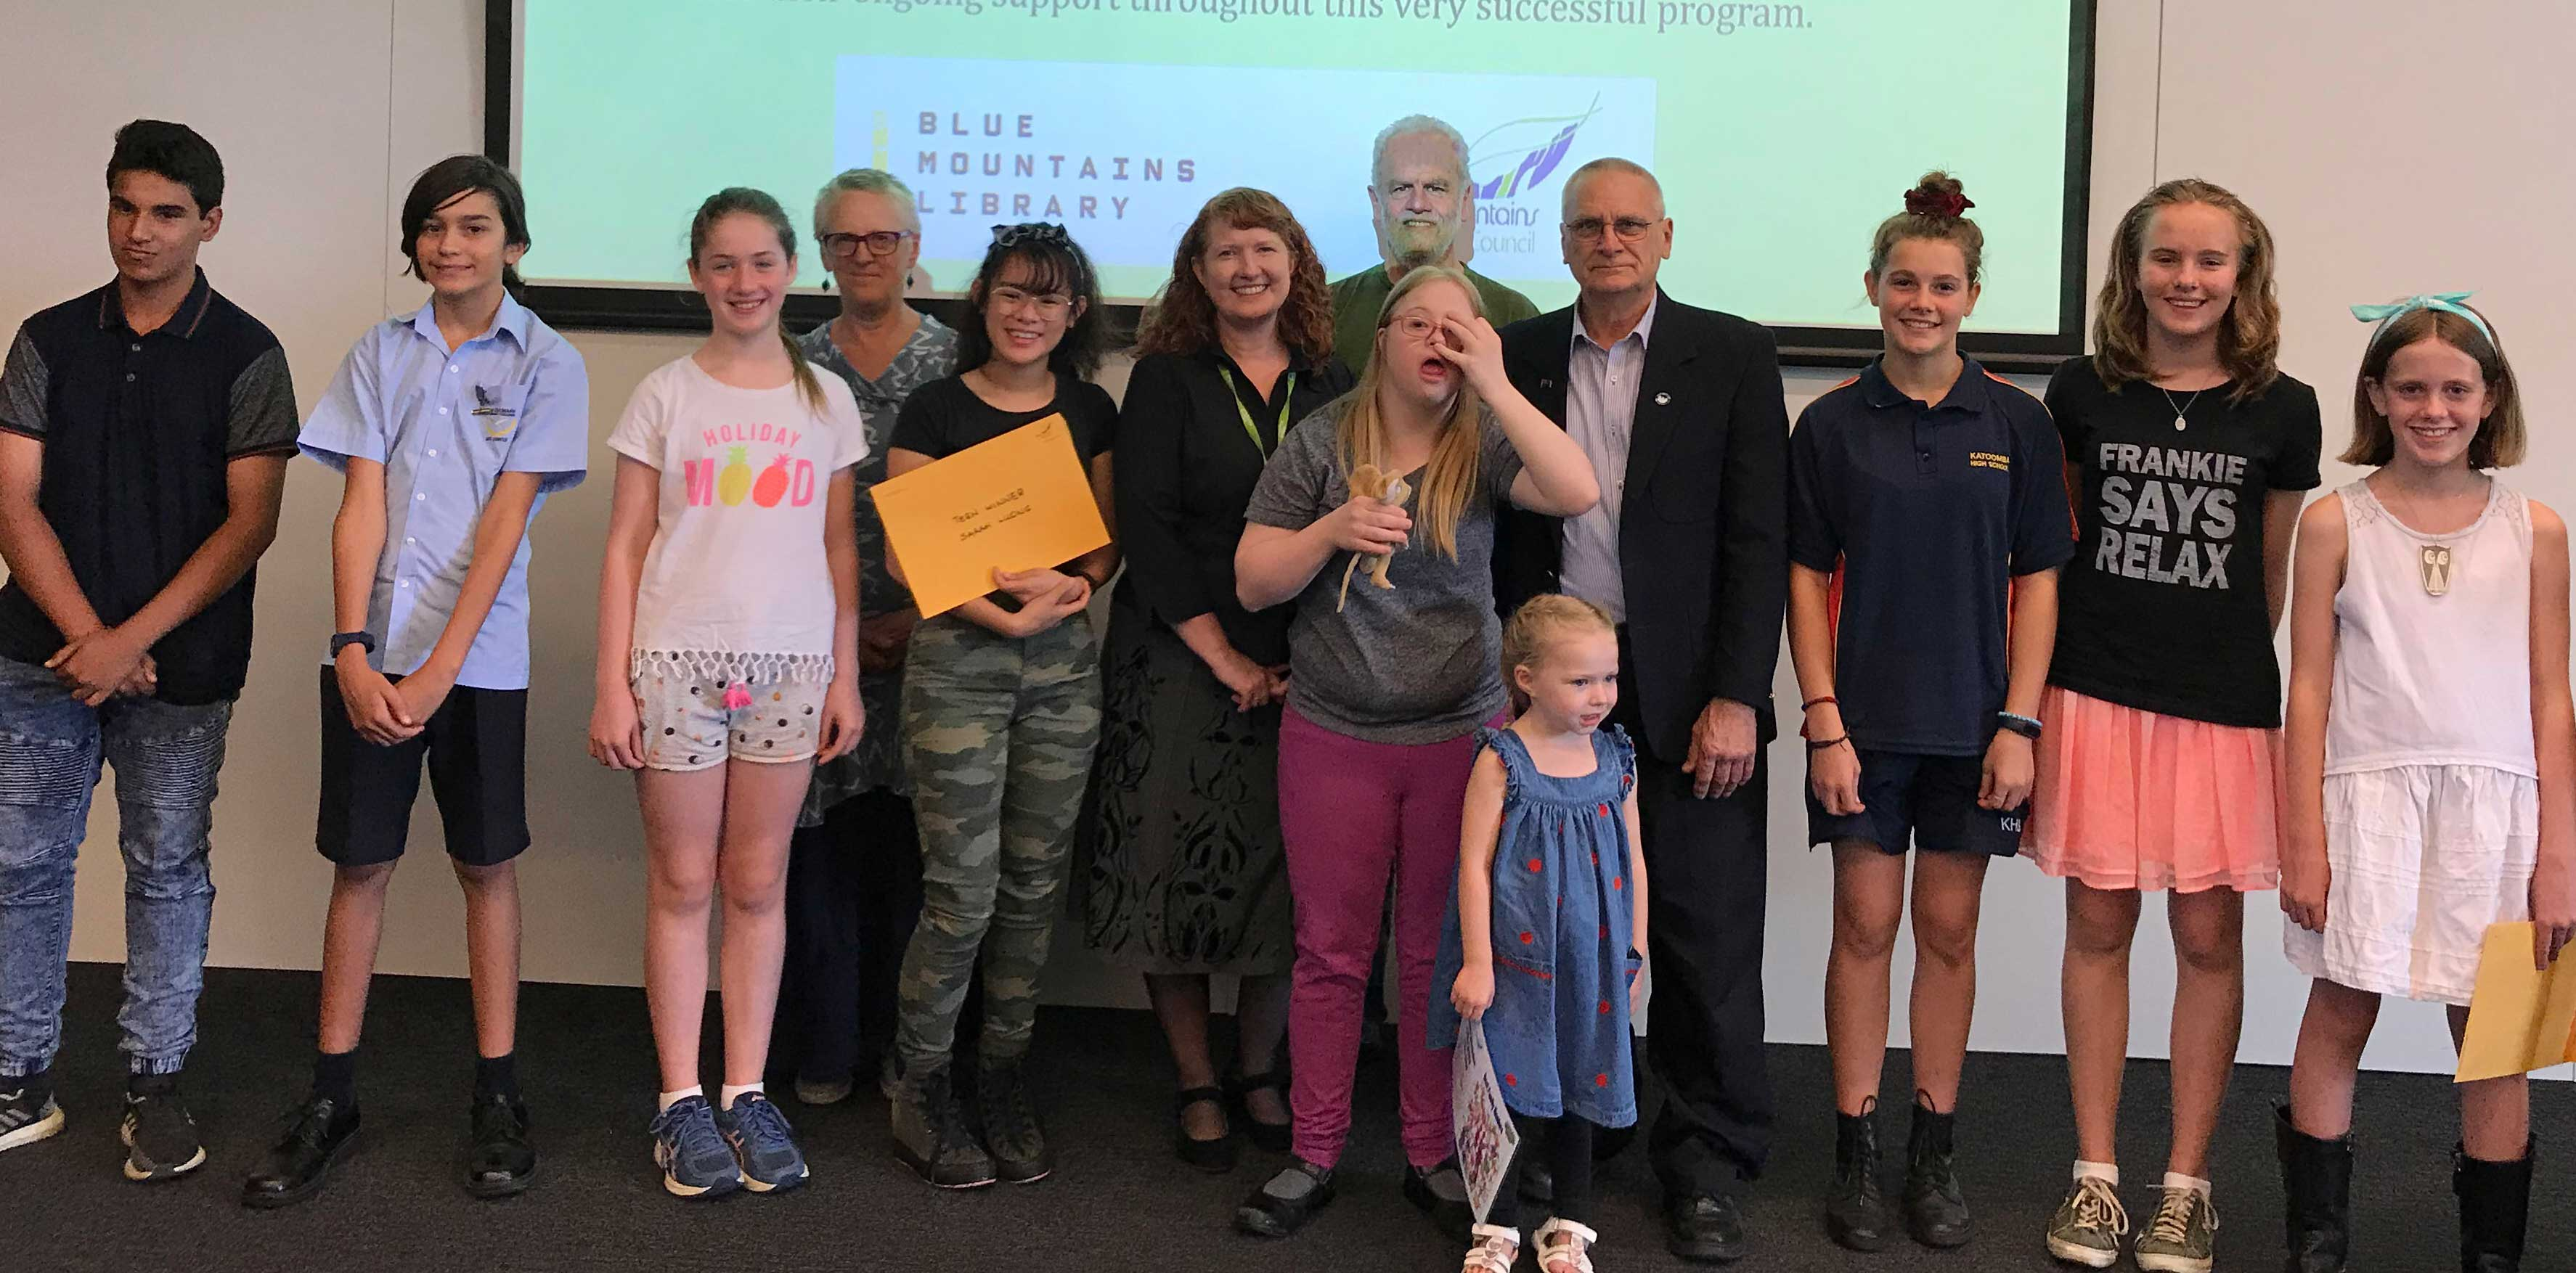 Summer Reading Challenge winners and sponsors - Syed Ahmed, Luca Penserini, Abigail Dickens, Annie Sharkey from Turning Page, Sarah Luong, Vicki Edmunds from Blue Mountains City Council, Amy Grieves, Alan Crooks from Turning Page, Emma Glenfield, Deputy Mayor Chris Van Der Kley, Ella-Beth Bonny, Emma Cranby and Madeline Brett-Hall.